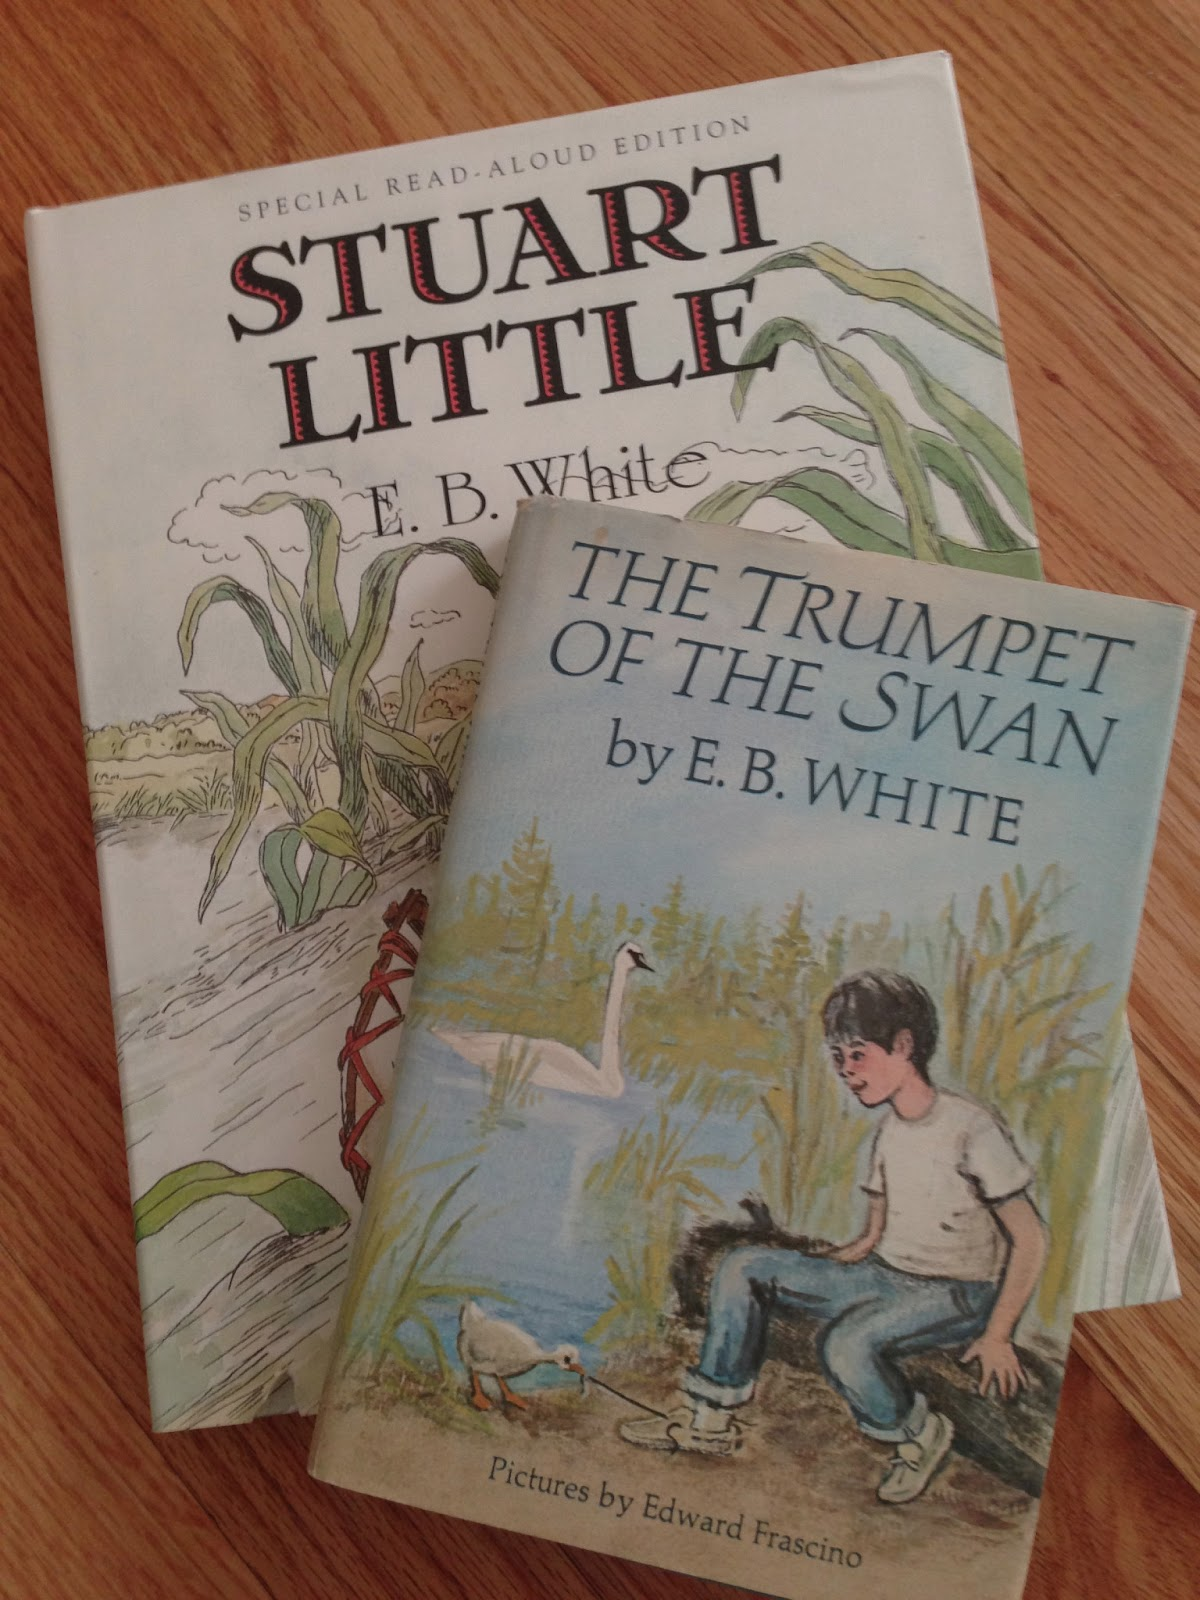 Anne S Pocket Finds Favorite Children S Books To Thrift